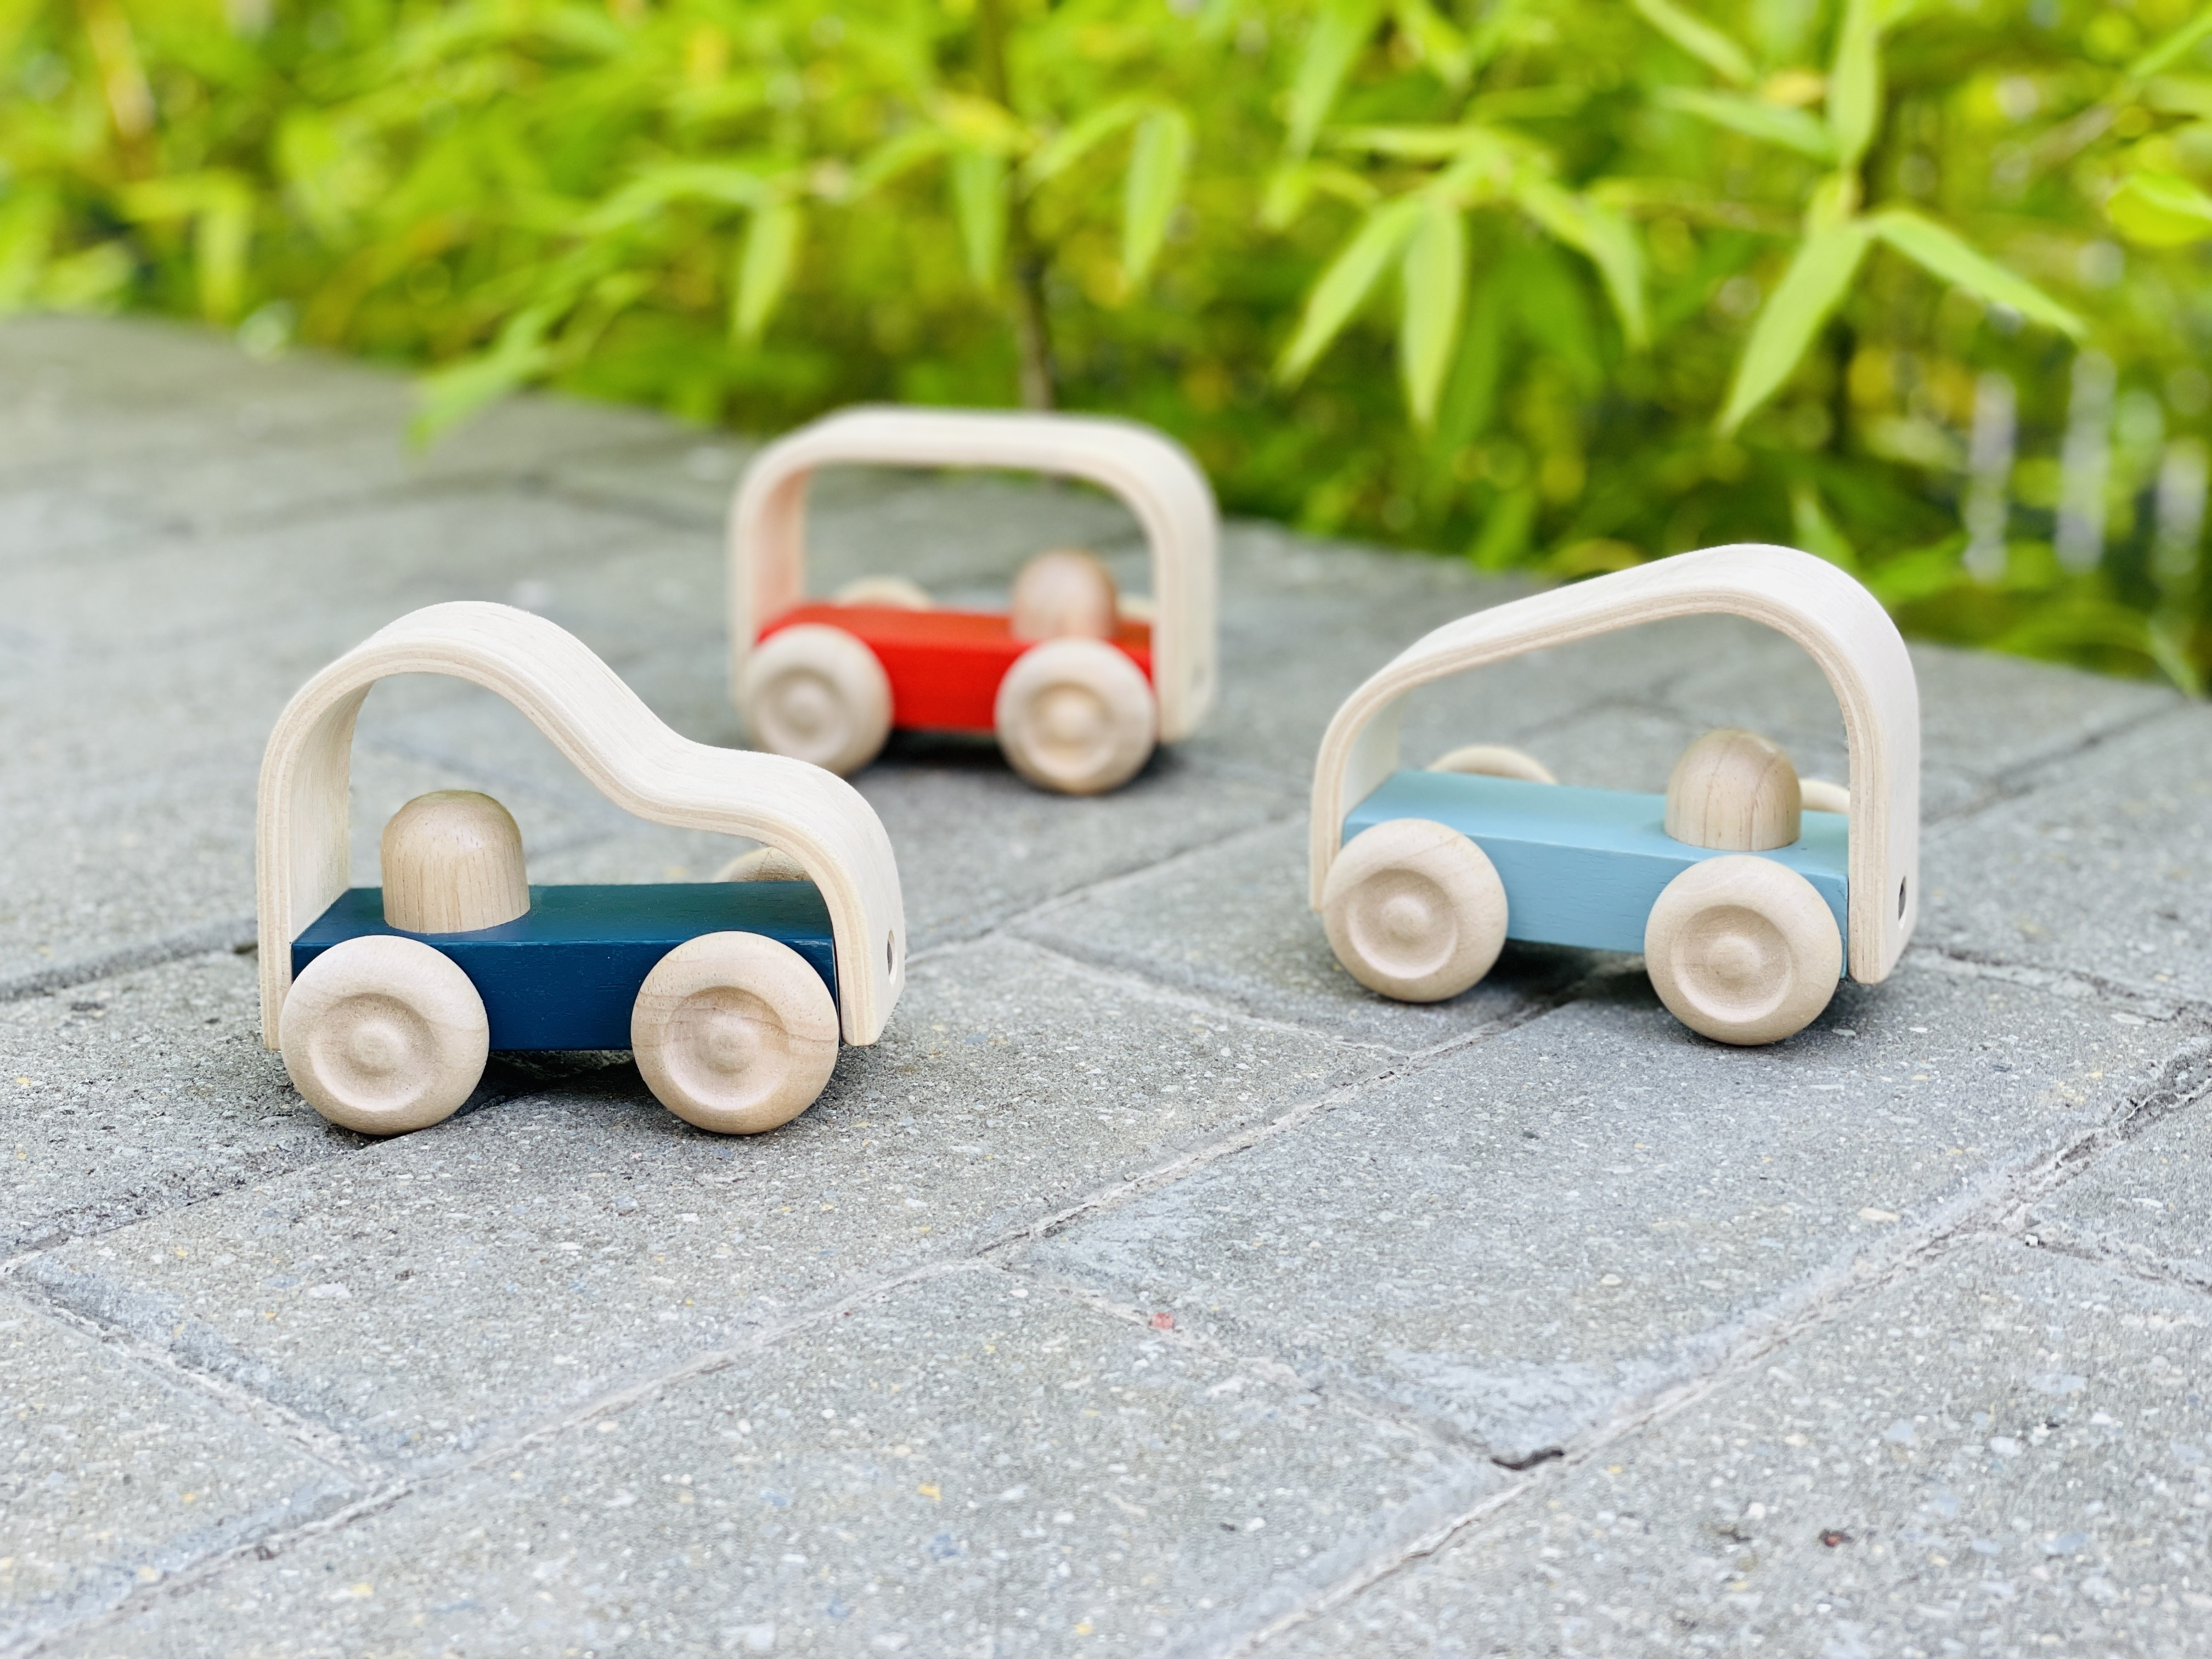 5727_PlanToys_Vroom_Truck_Active_Play_12m_Fine_Motor_Cause_and_Effect_Language_and_Communications_Imagination_Coordination_Gross_Motor_Wooden_toys_Education_toys_Safety_Toys_Non-toxic_1.jpg